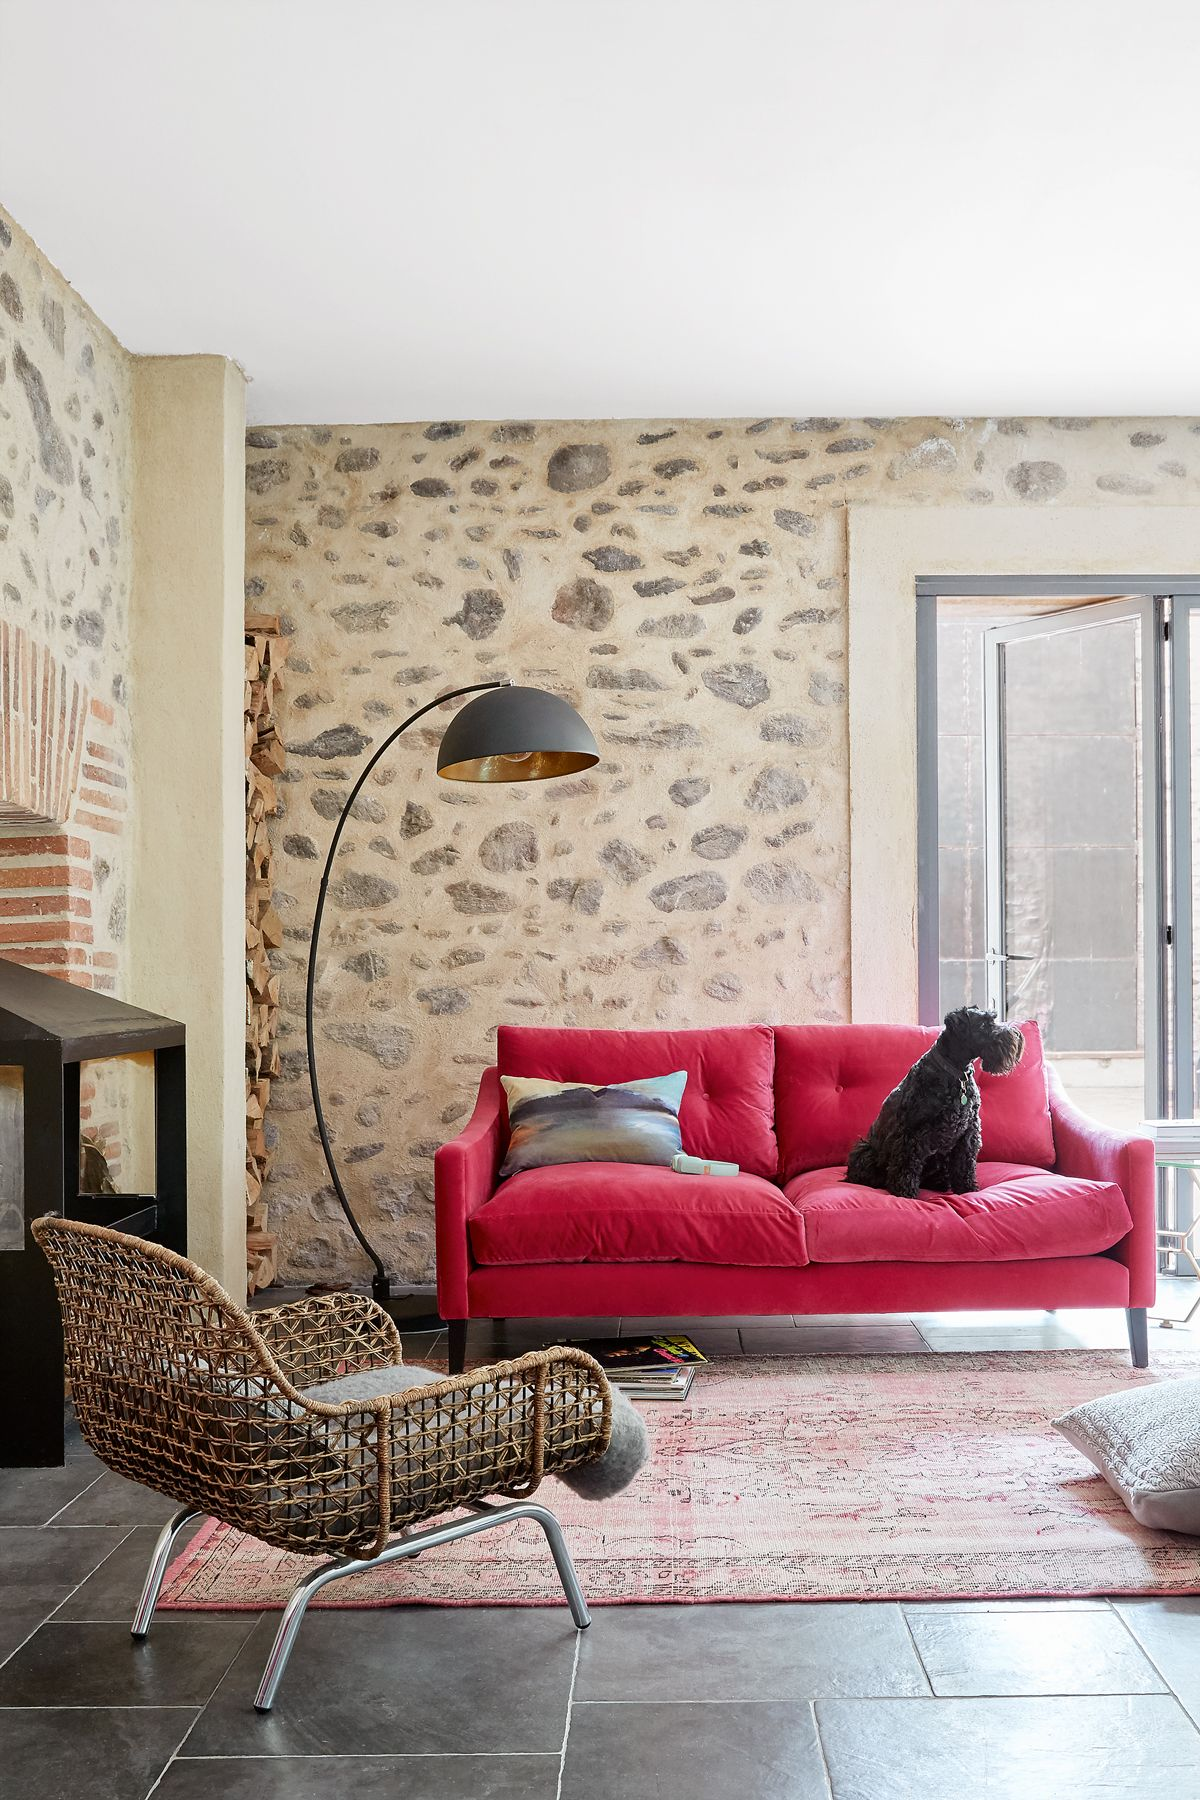 Explore this chic farmhouse in France with modern rustic appeal